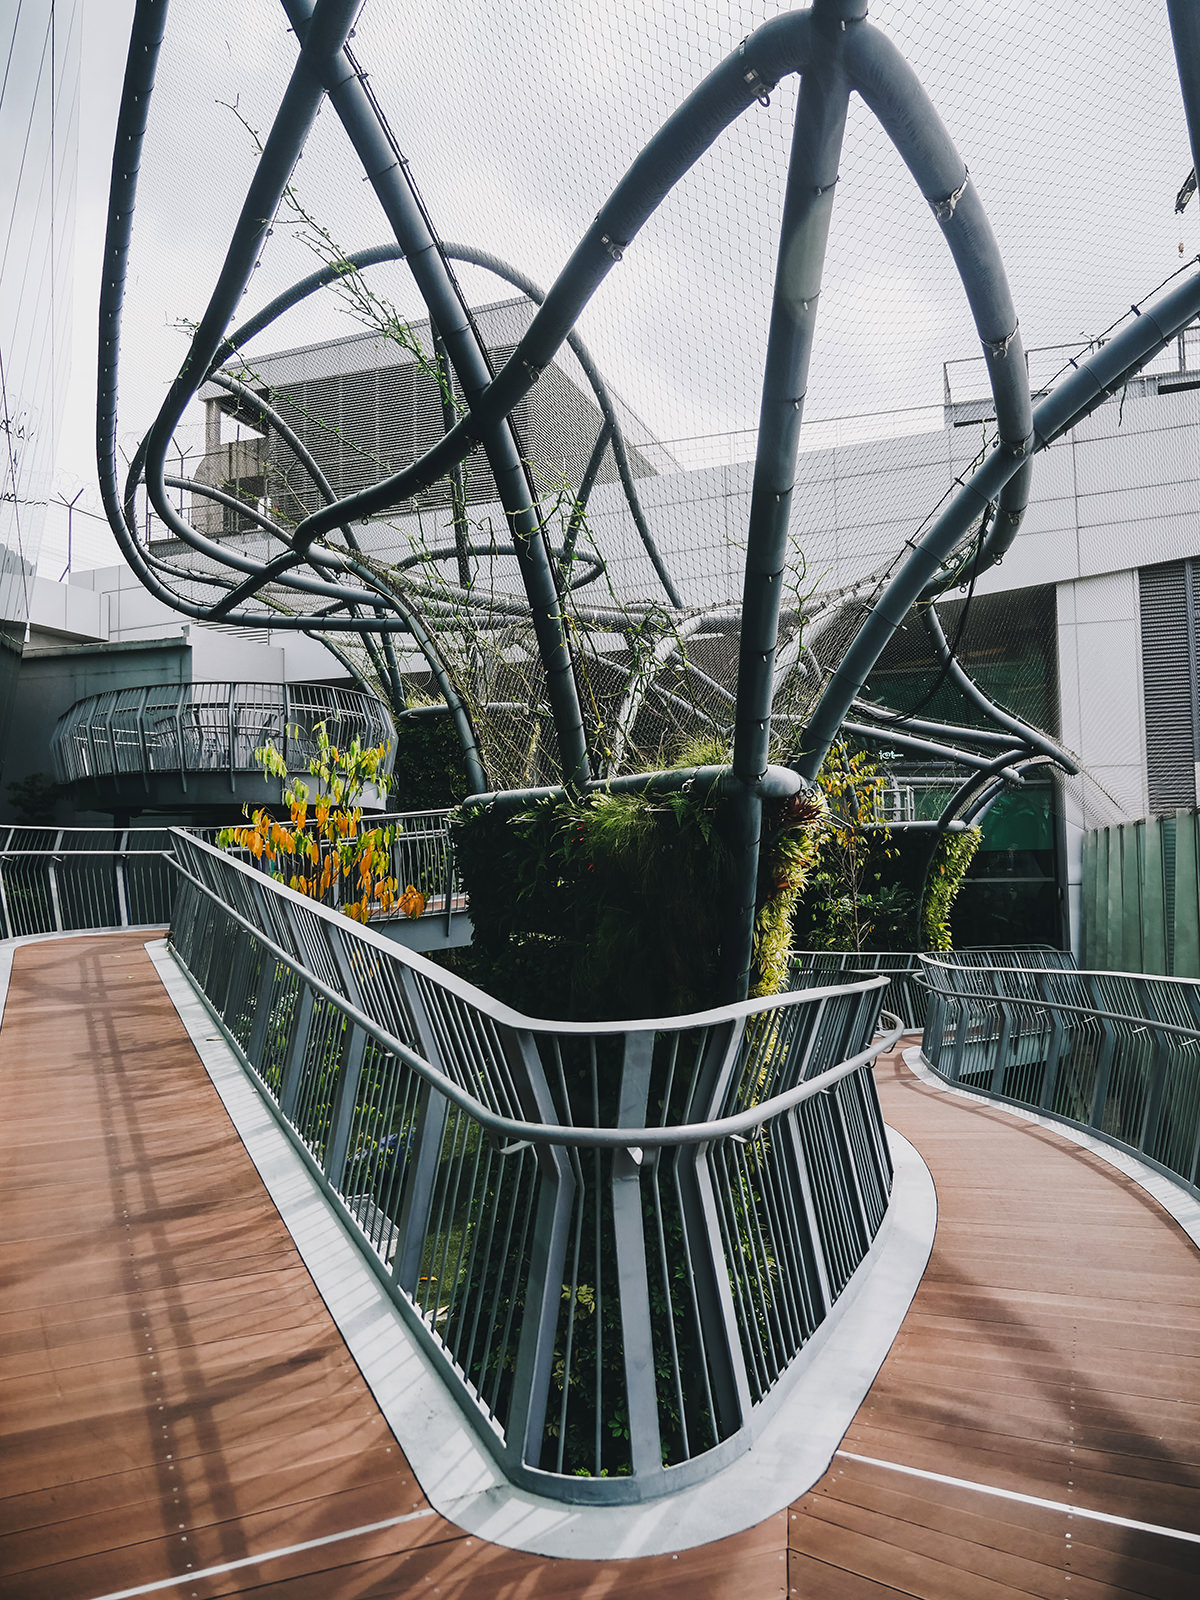 What: Sculptural Tree Garden<br>Where: Terminal 1 Departure Transit Hall, Level 2